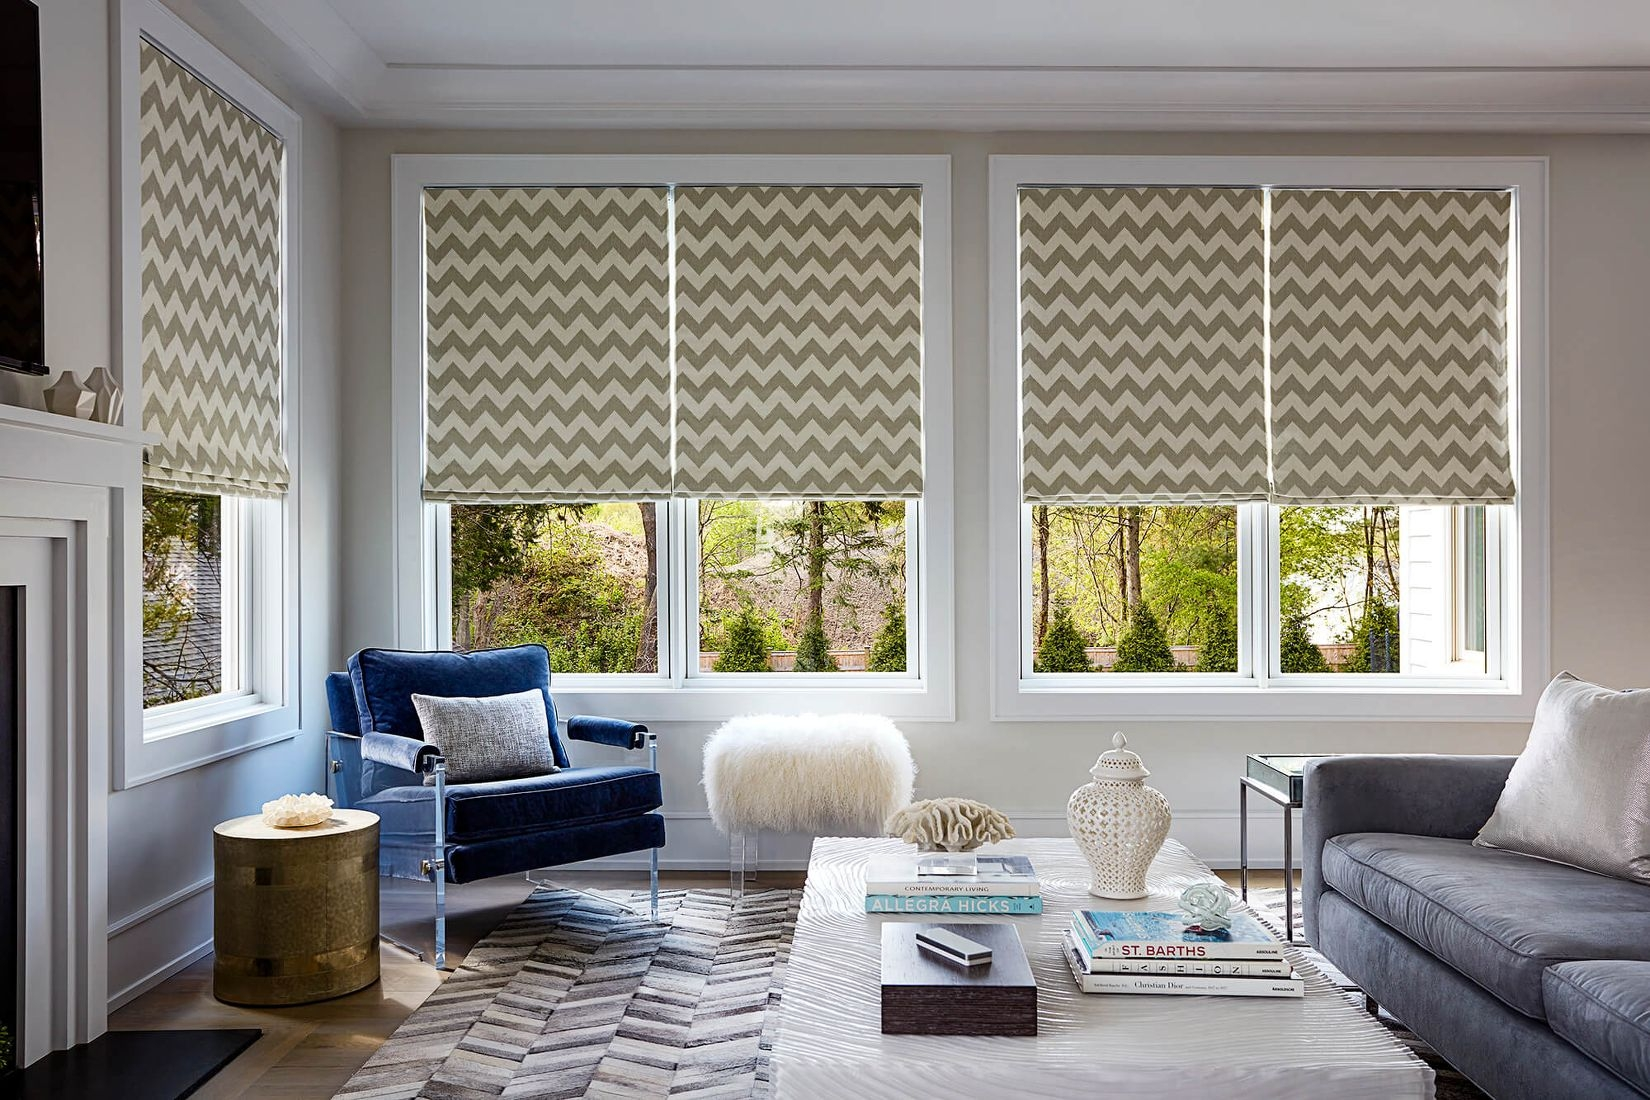 Roman Shades Custom Made Fabric Shades Blinds To Go Within Roman Fabric Blinds (Image 11 of 15)